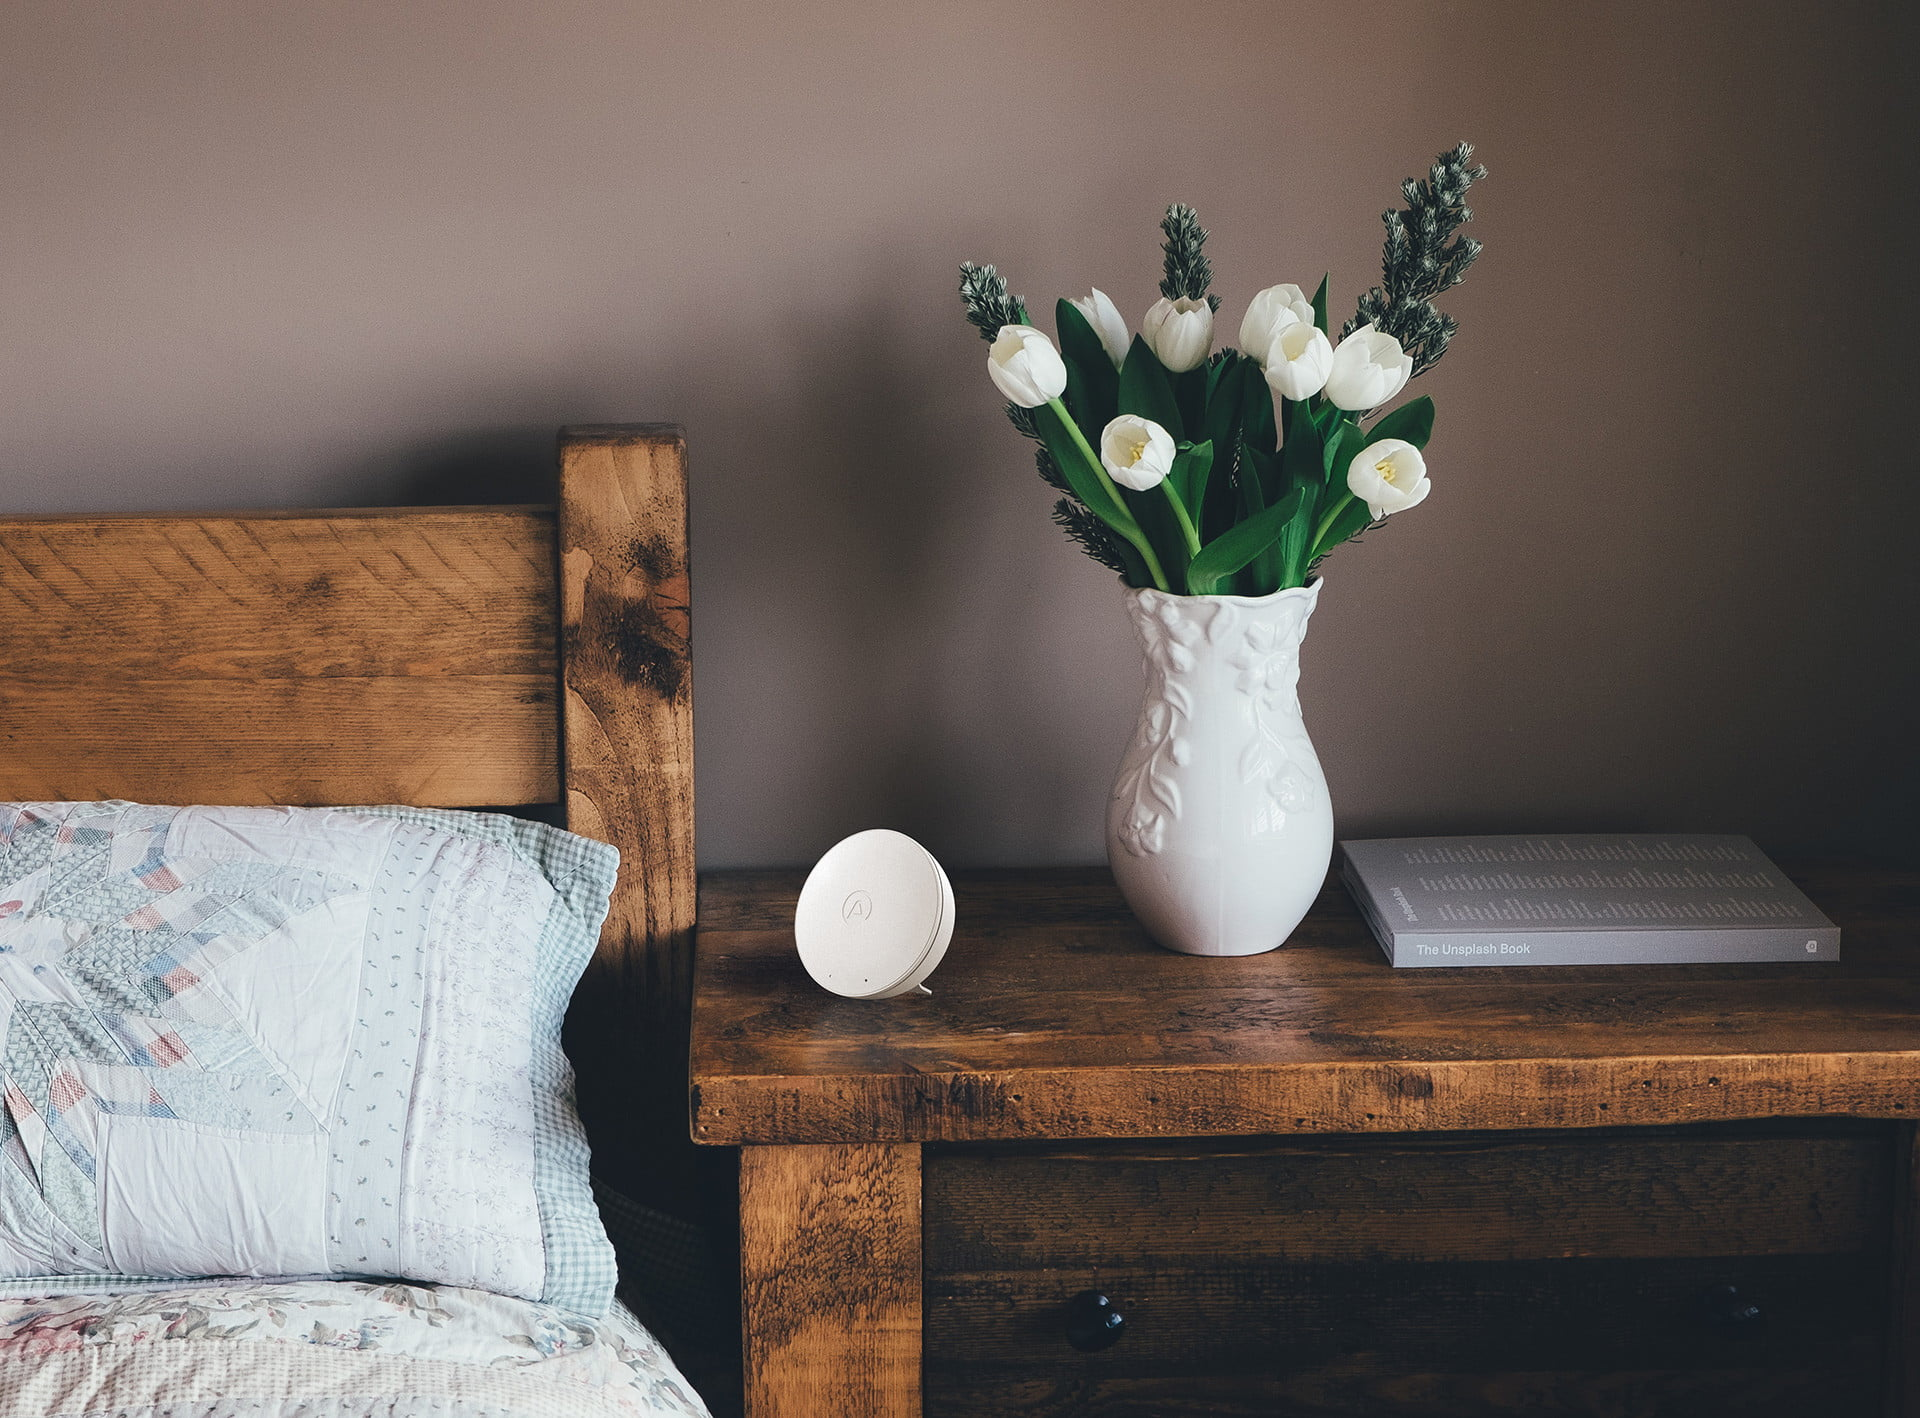 The Wave Mini makes sure the air you're breathing inside your home is safe